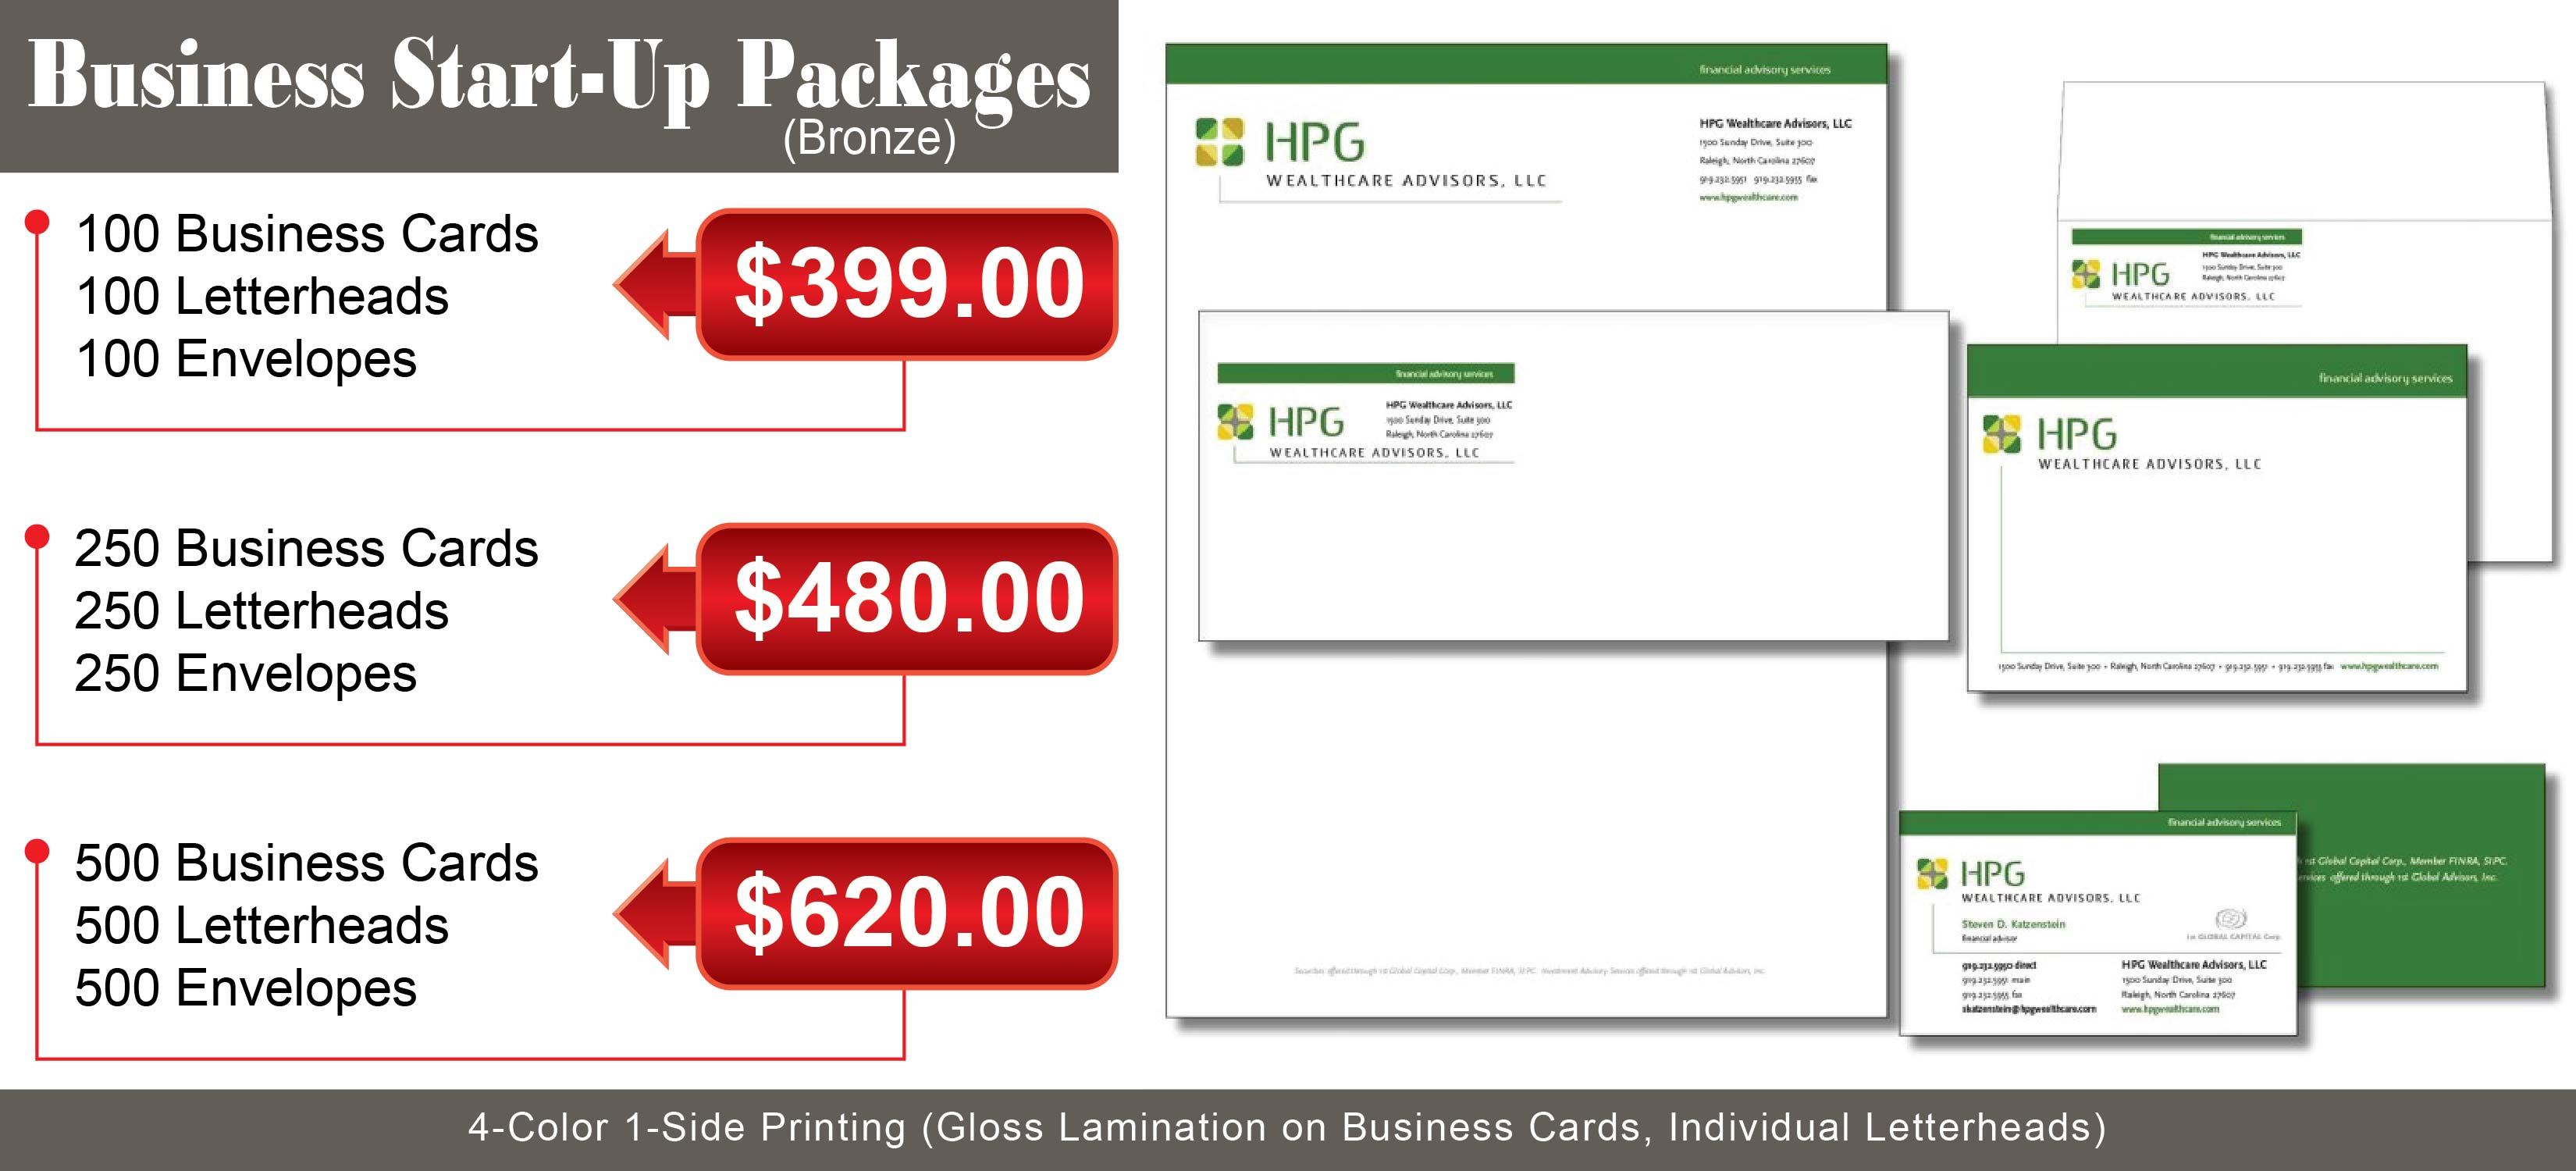 business_packages